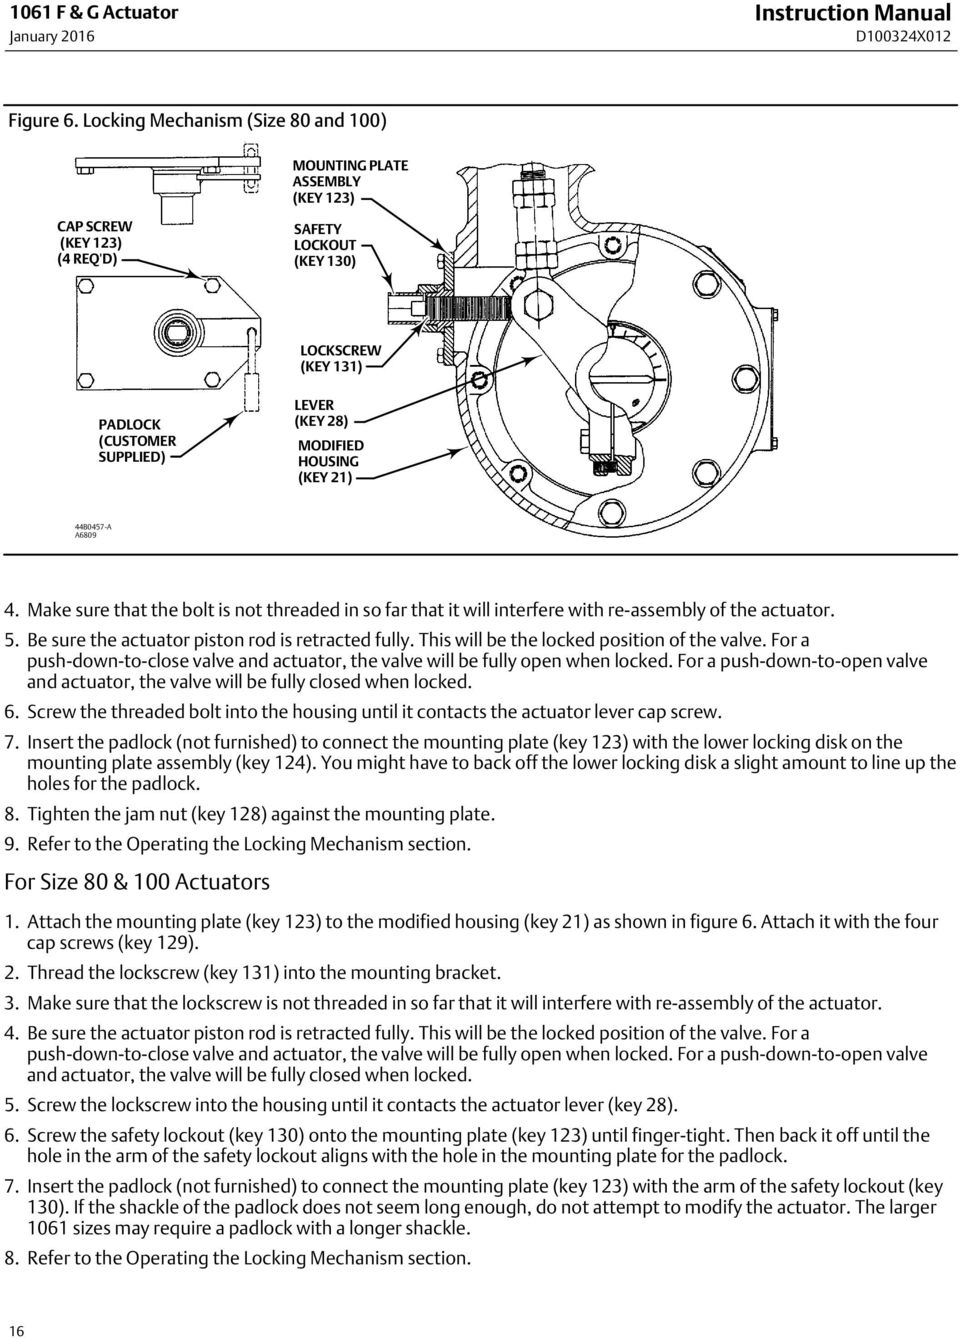 HOUSING (KEY 21) 44B0457 A A6809 4. Make sure that the bolt is not threaded in so far that it will interfere with re assembly of the actuator. 5. Be sure the actuator piston rod is retracted fully.